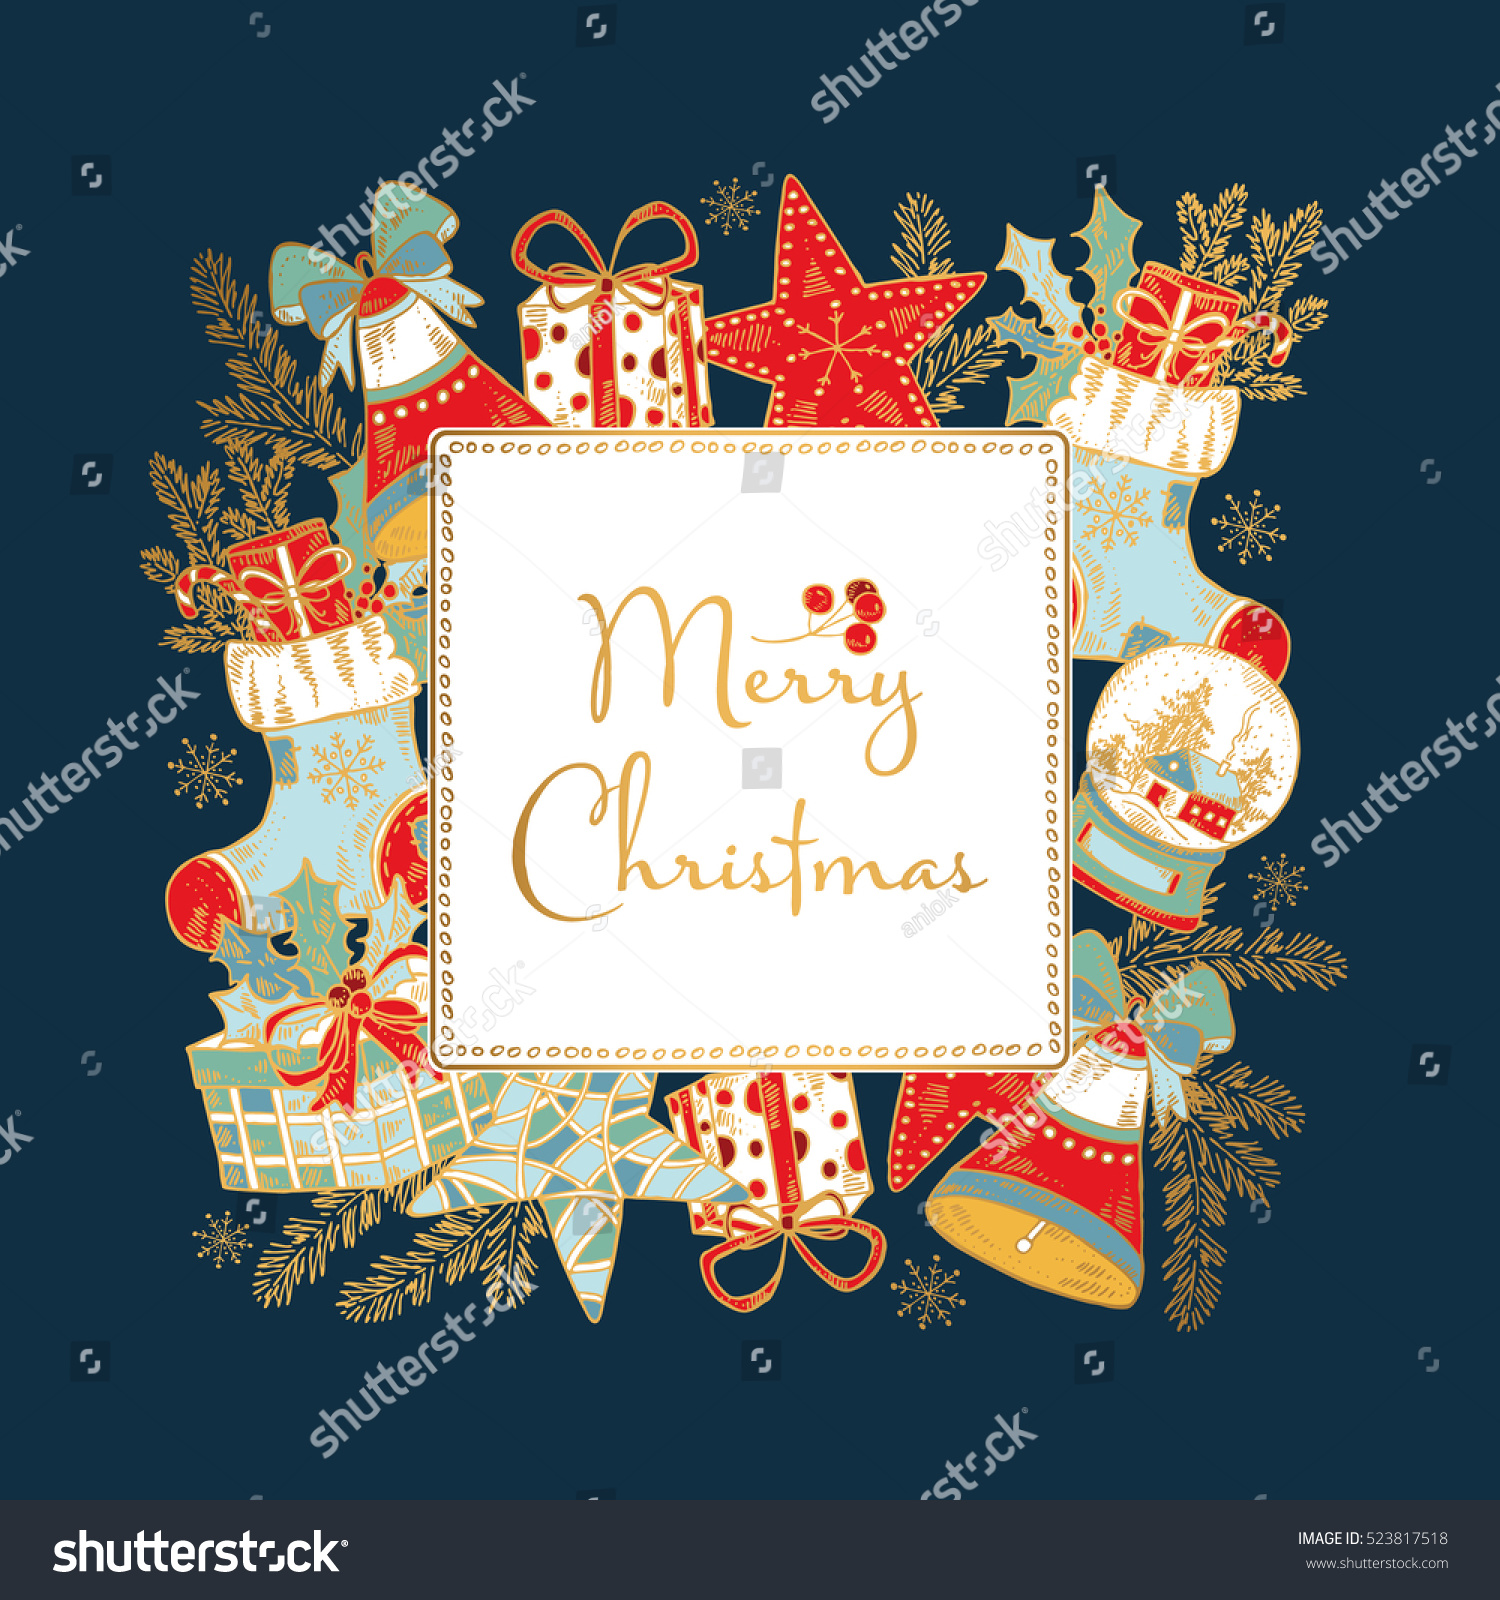 Golden Christmas New Year Card Christmas Stock Vector (Royalty Free ...